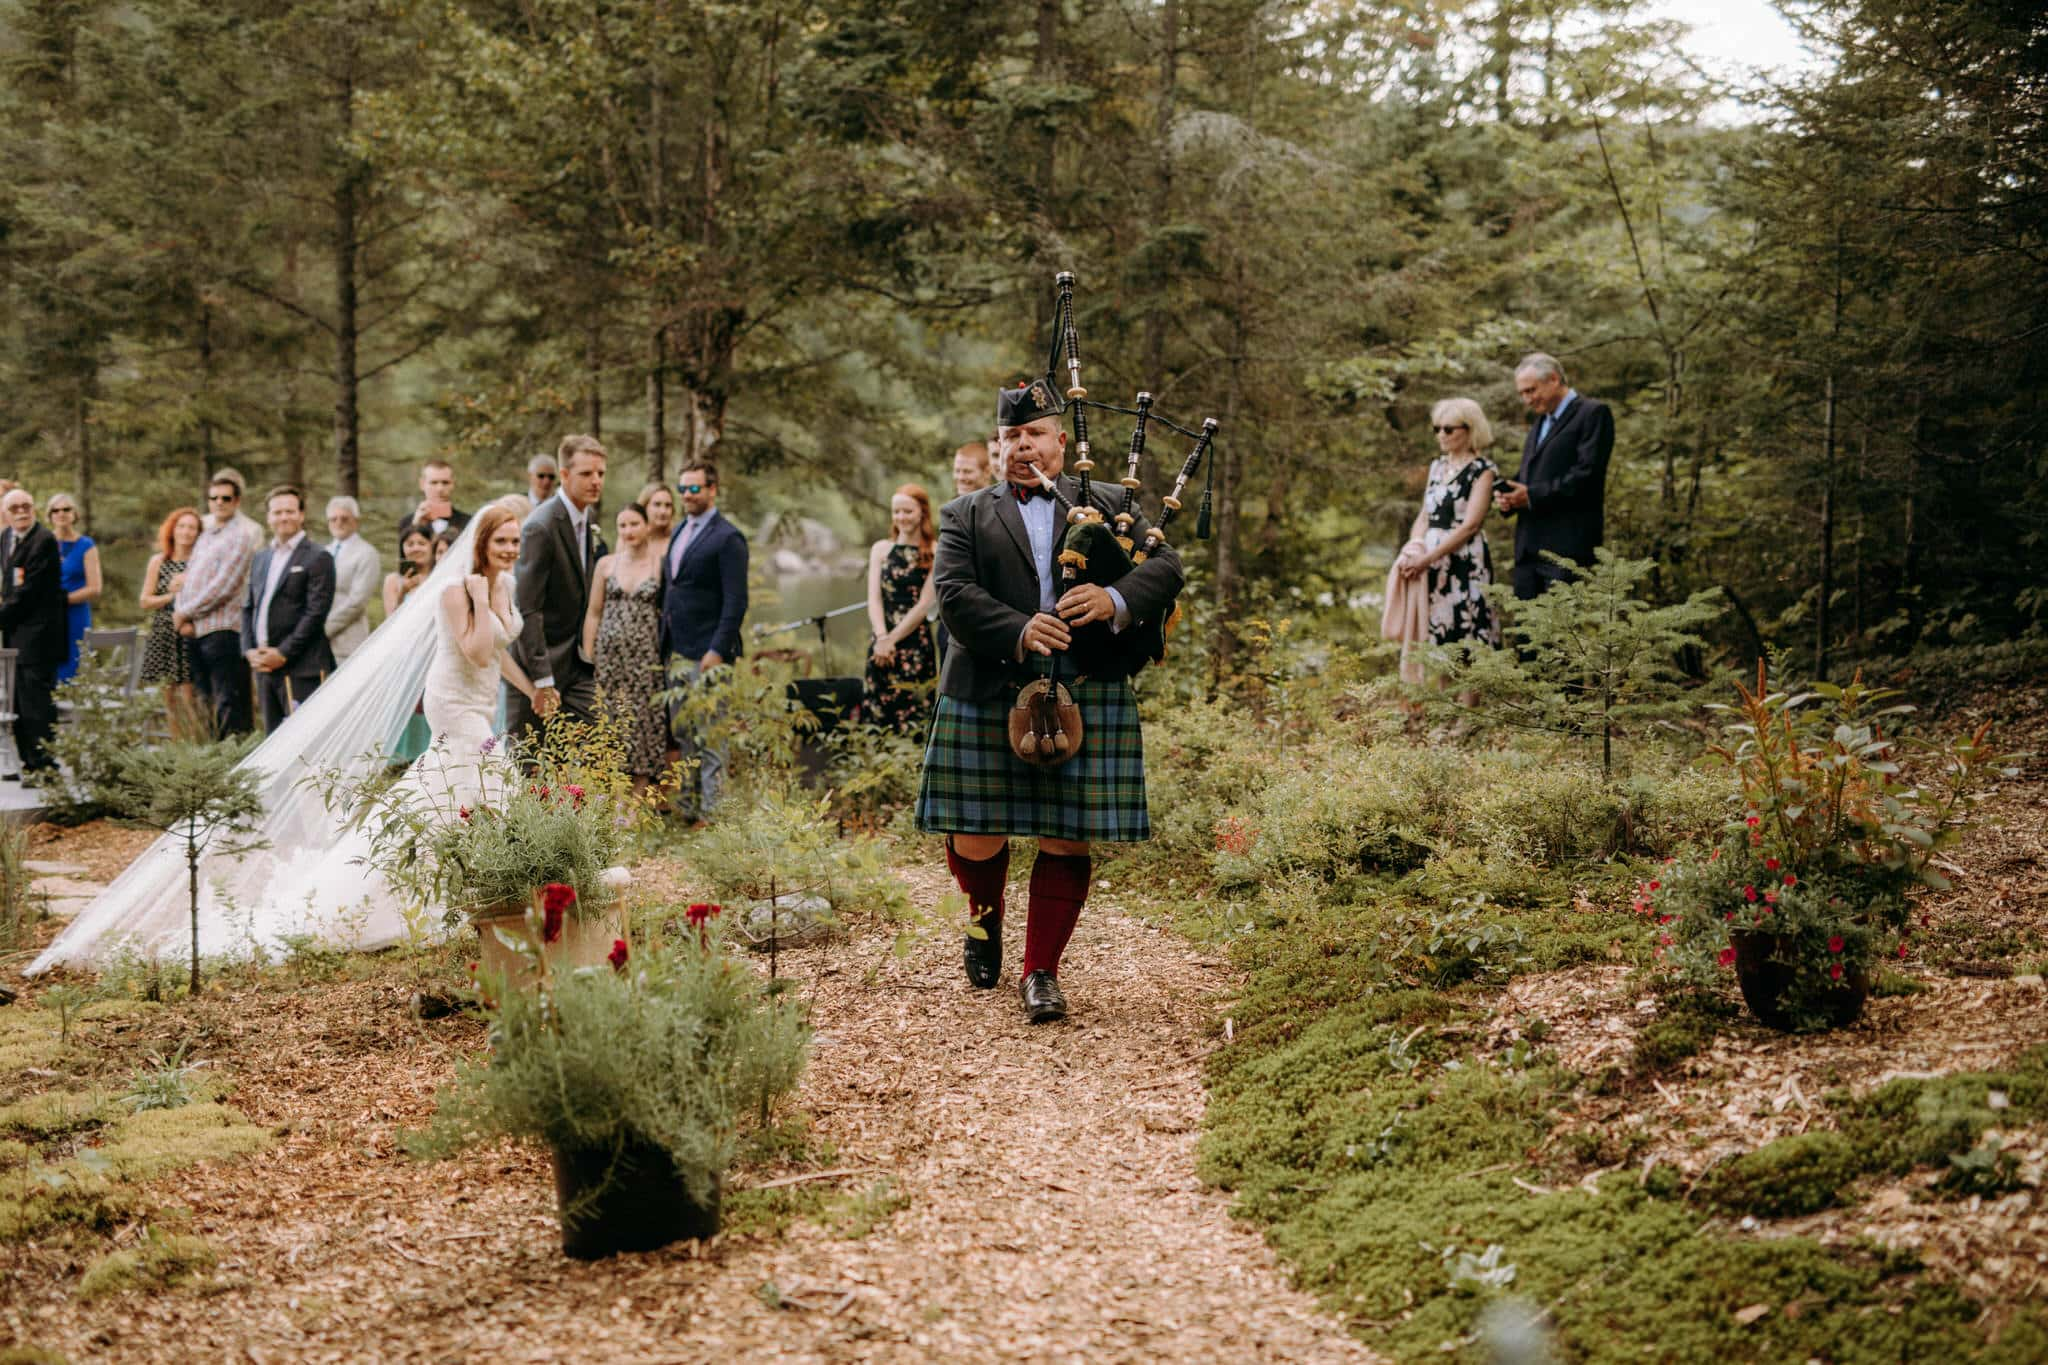 Intimate Wedding in Ivry-sur-le-Lac - Bagpipes procession - Wedding Photographer Brent Calis